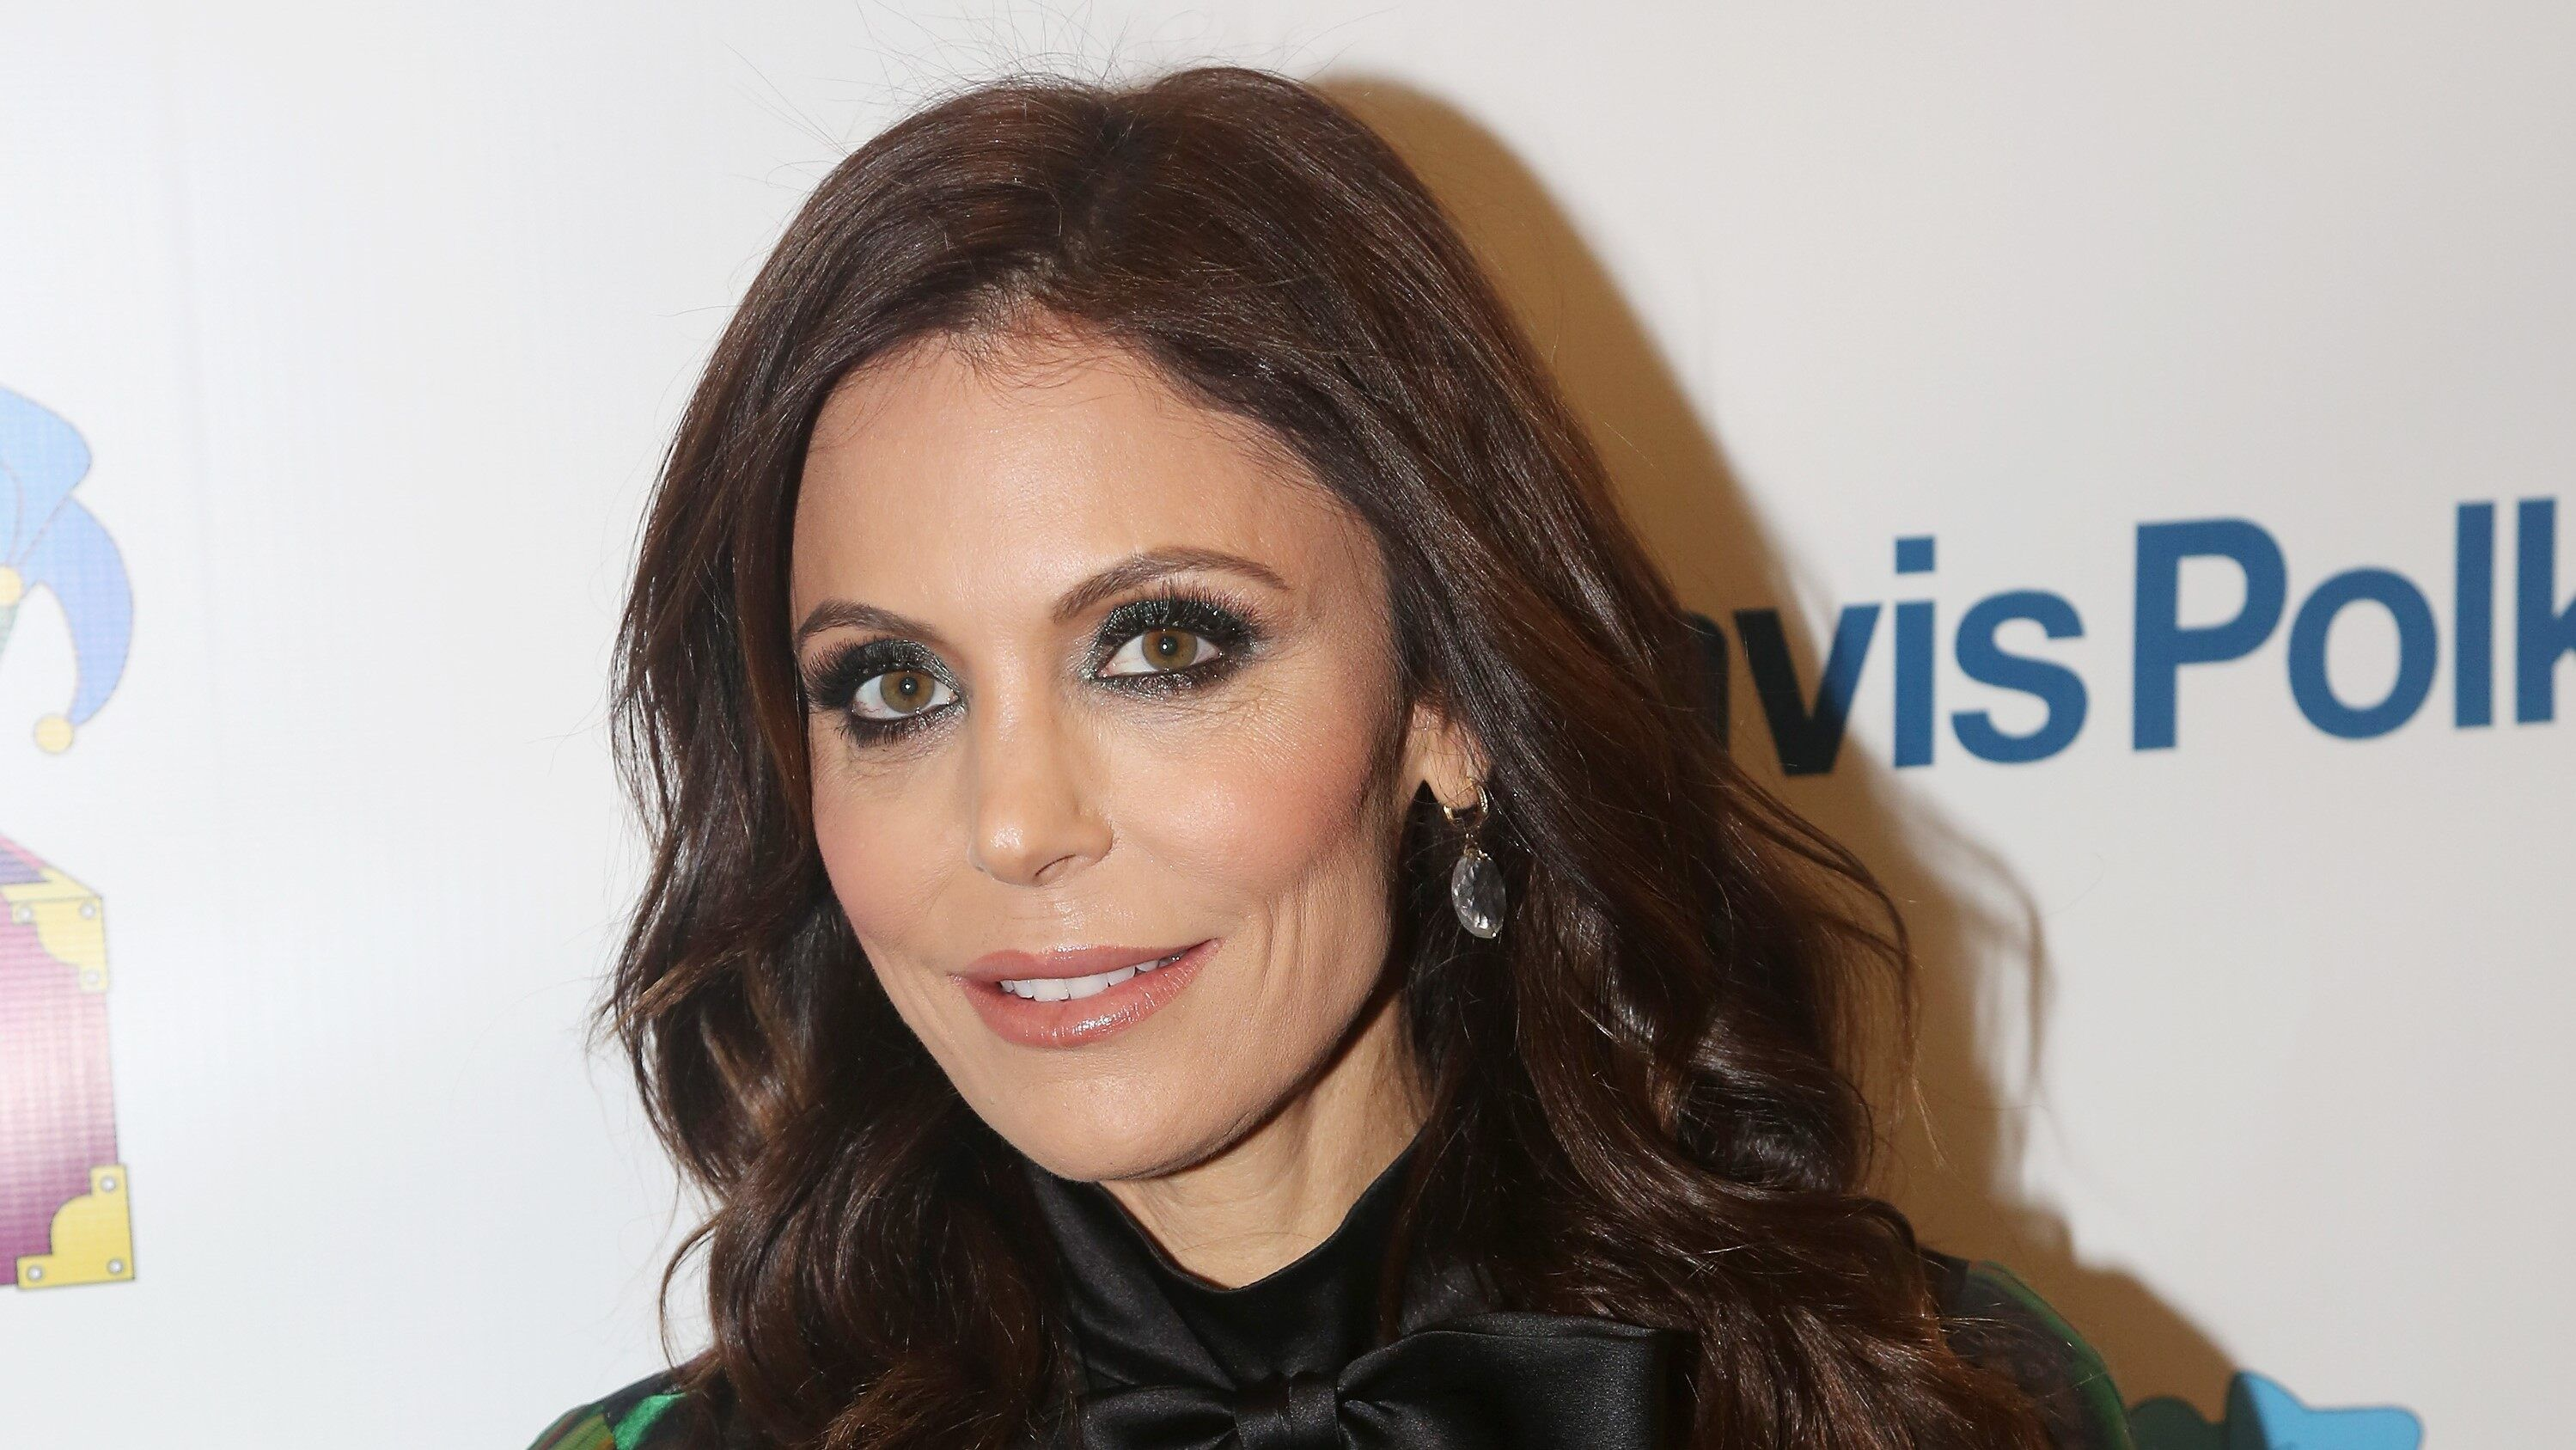 Bethenny Frankel Leaving Real Housewives Of New York Thanks